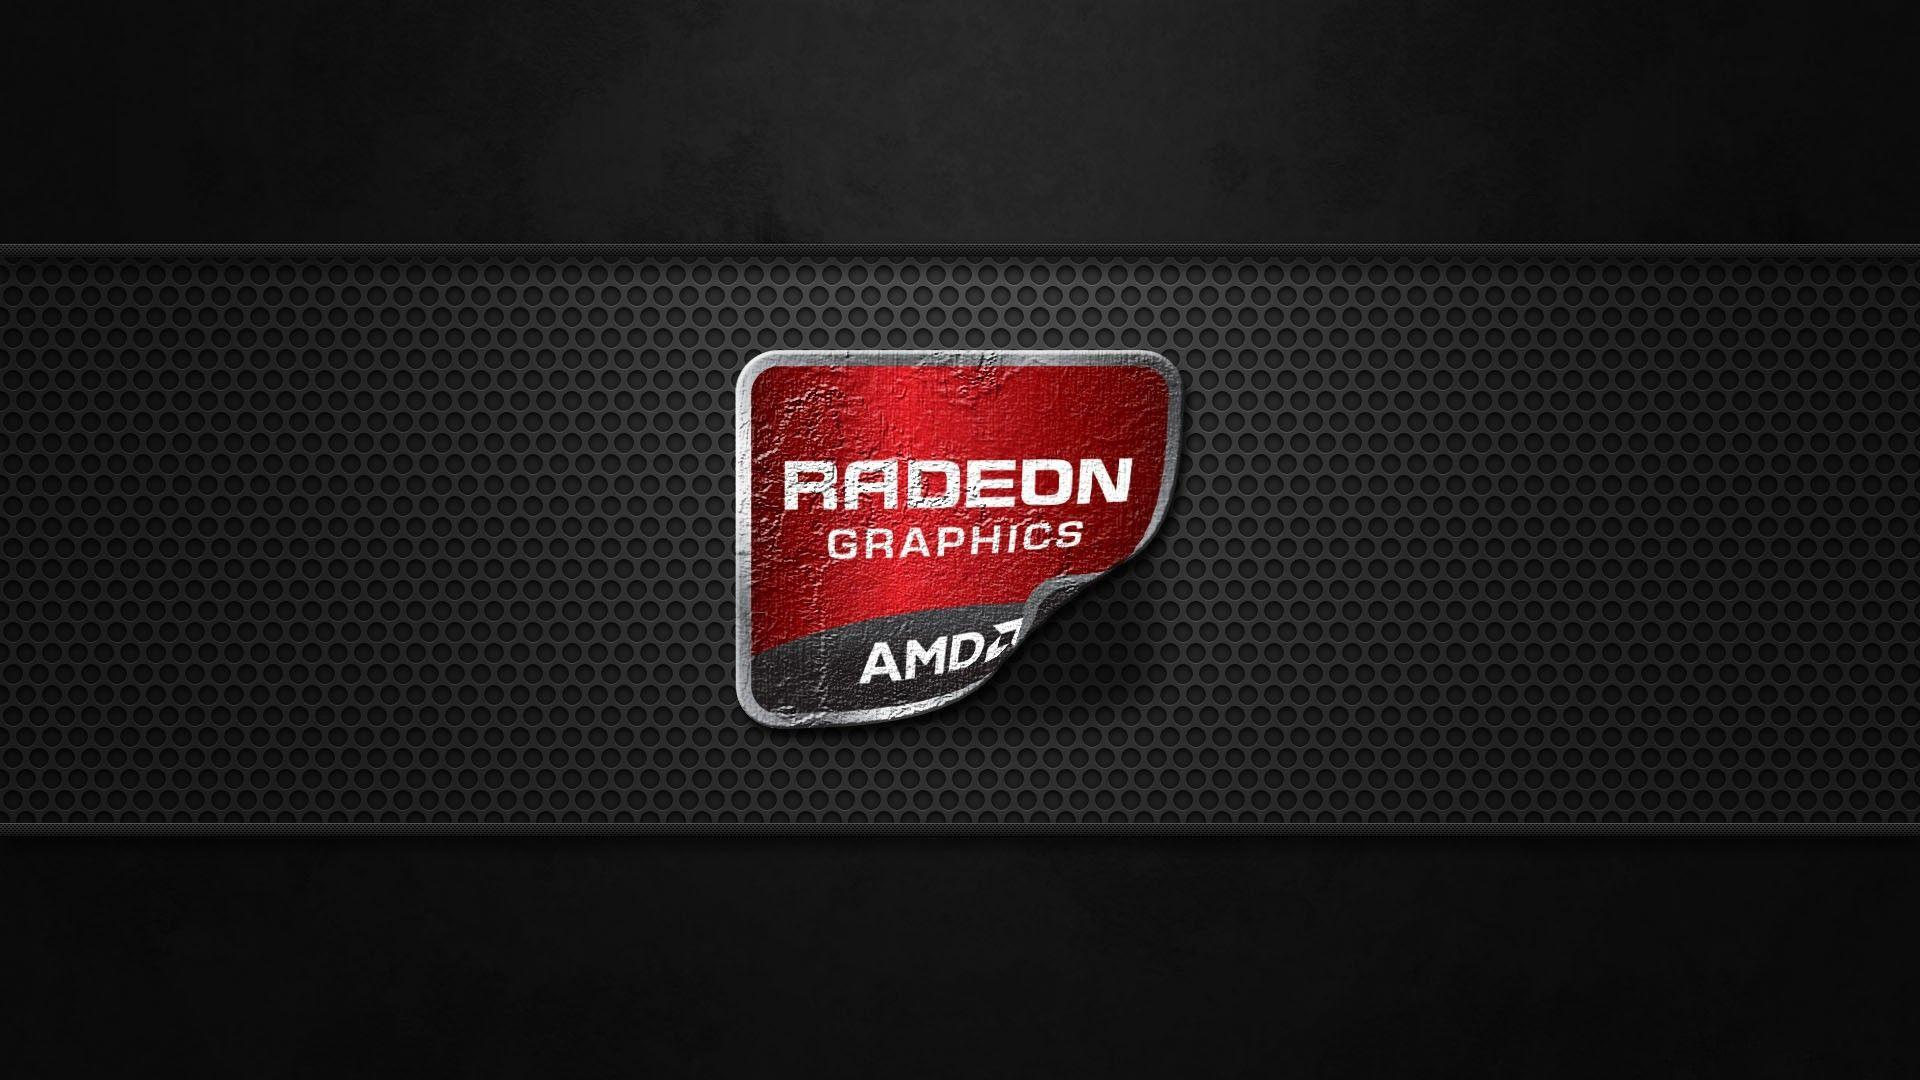 amd radeon wallpapers hd - photo #7